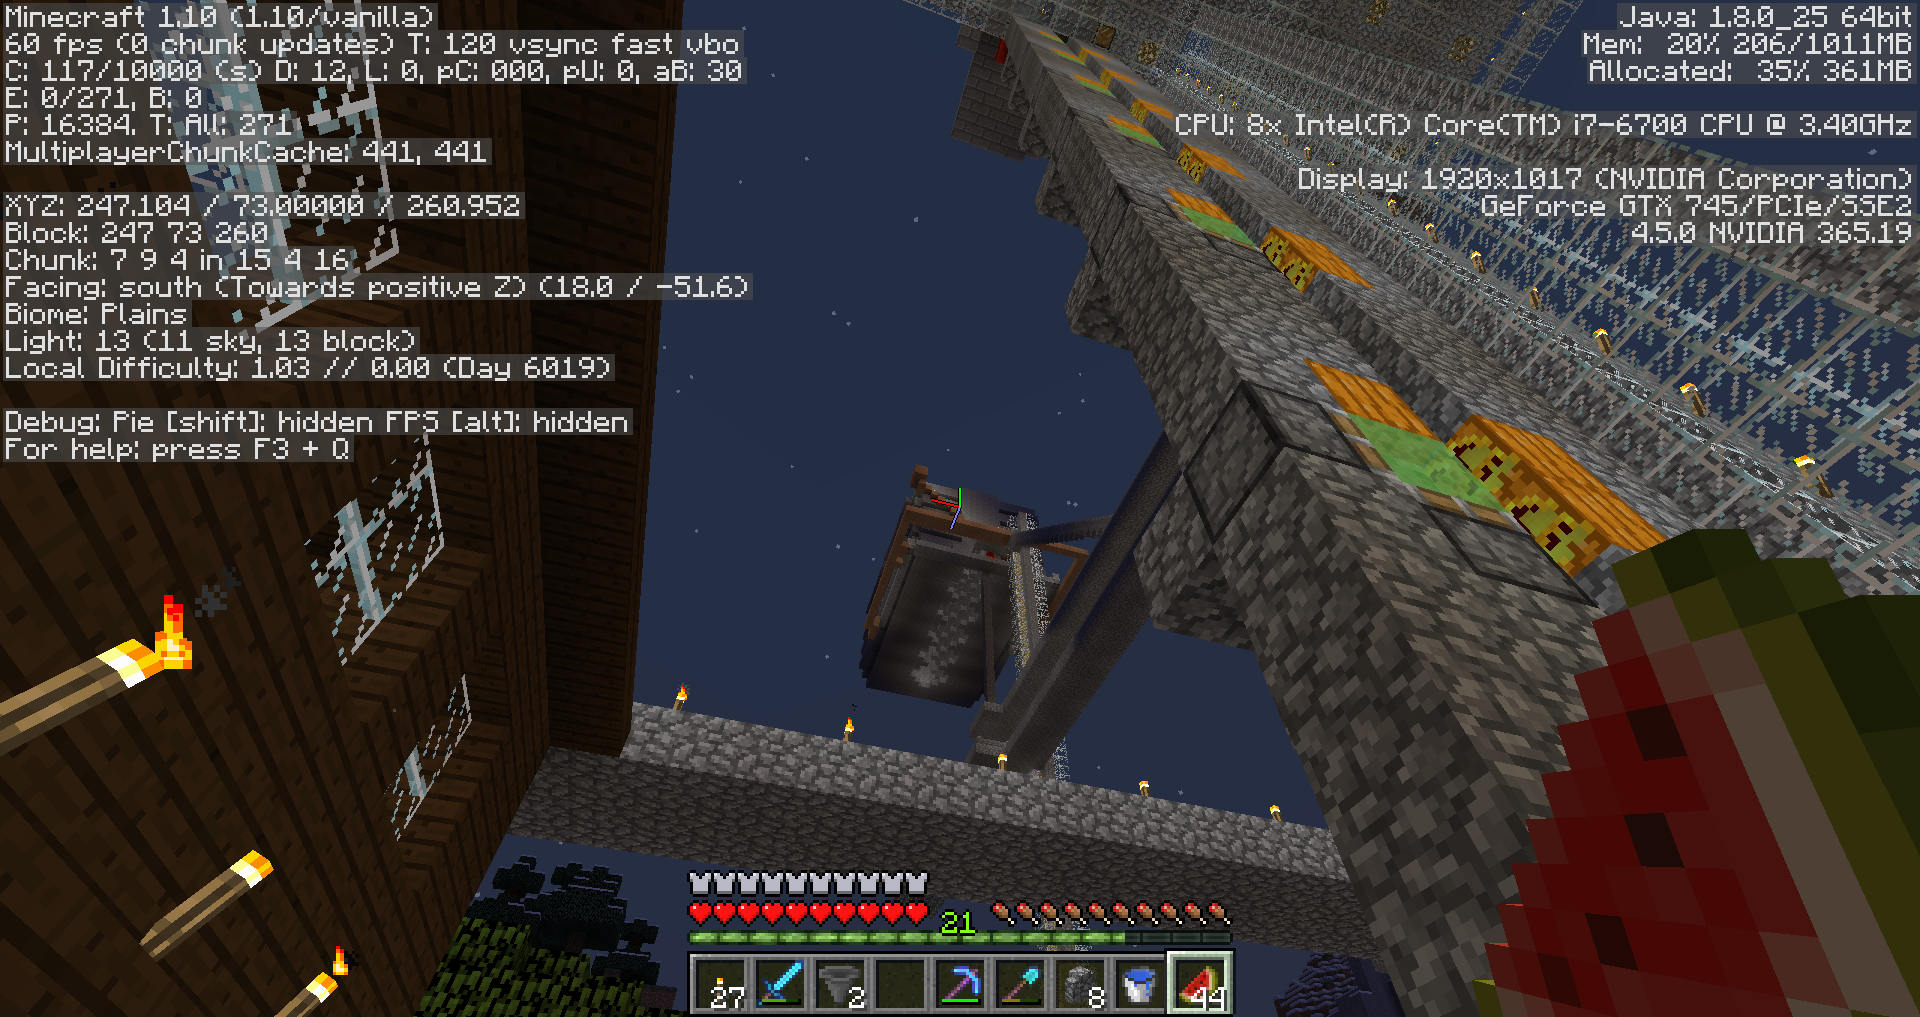 Minecraft Realms Server - Page 10 - Other Games - WePlayCiv Forums